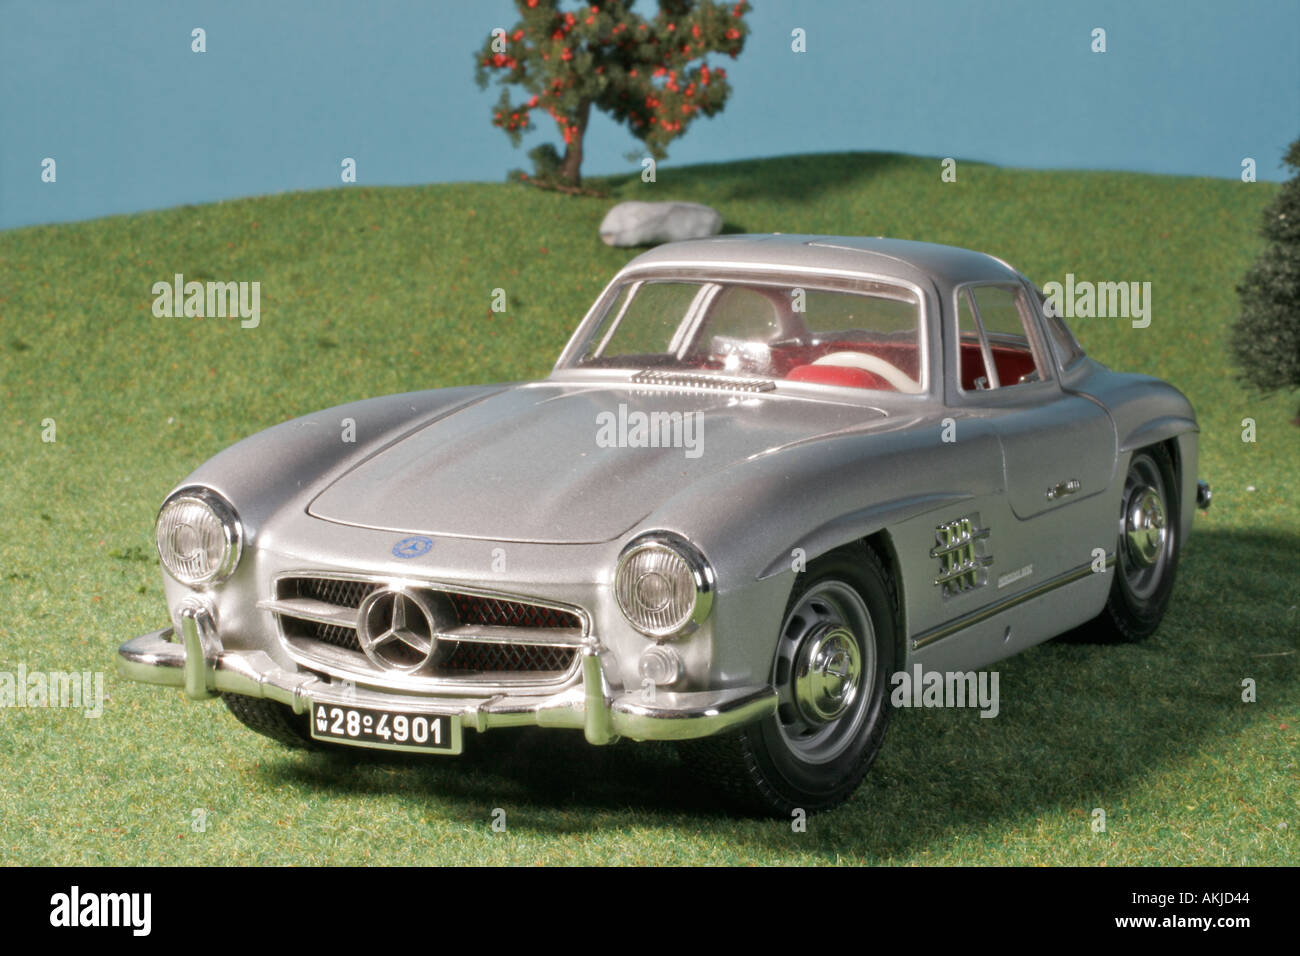 oldtimer car model mercedes 300 sl 1954 stock photo. Black Bedroom Furniture Sets. Home Design Ideas